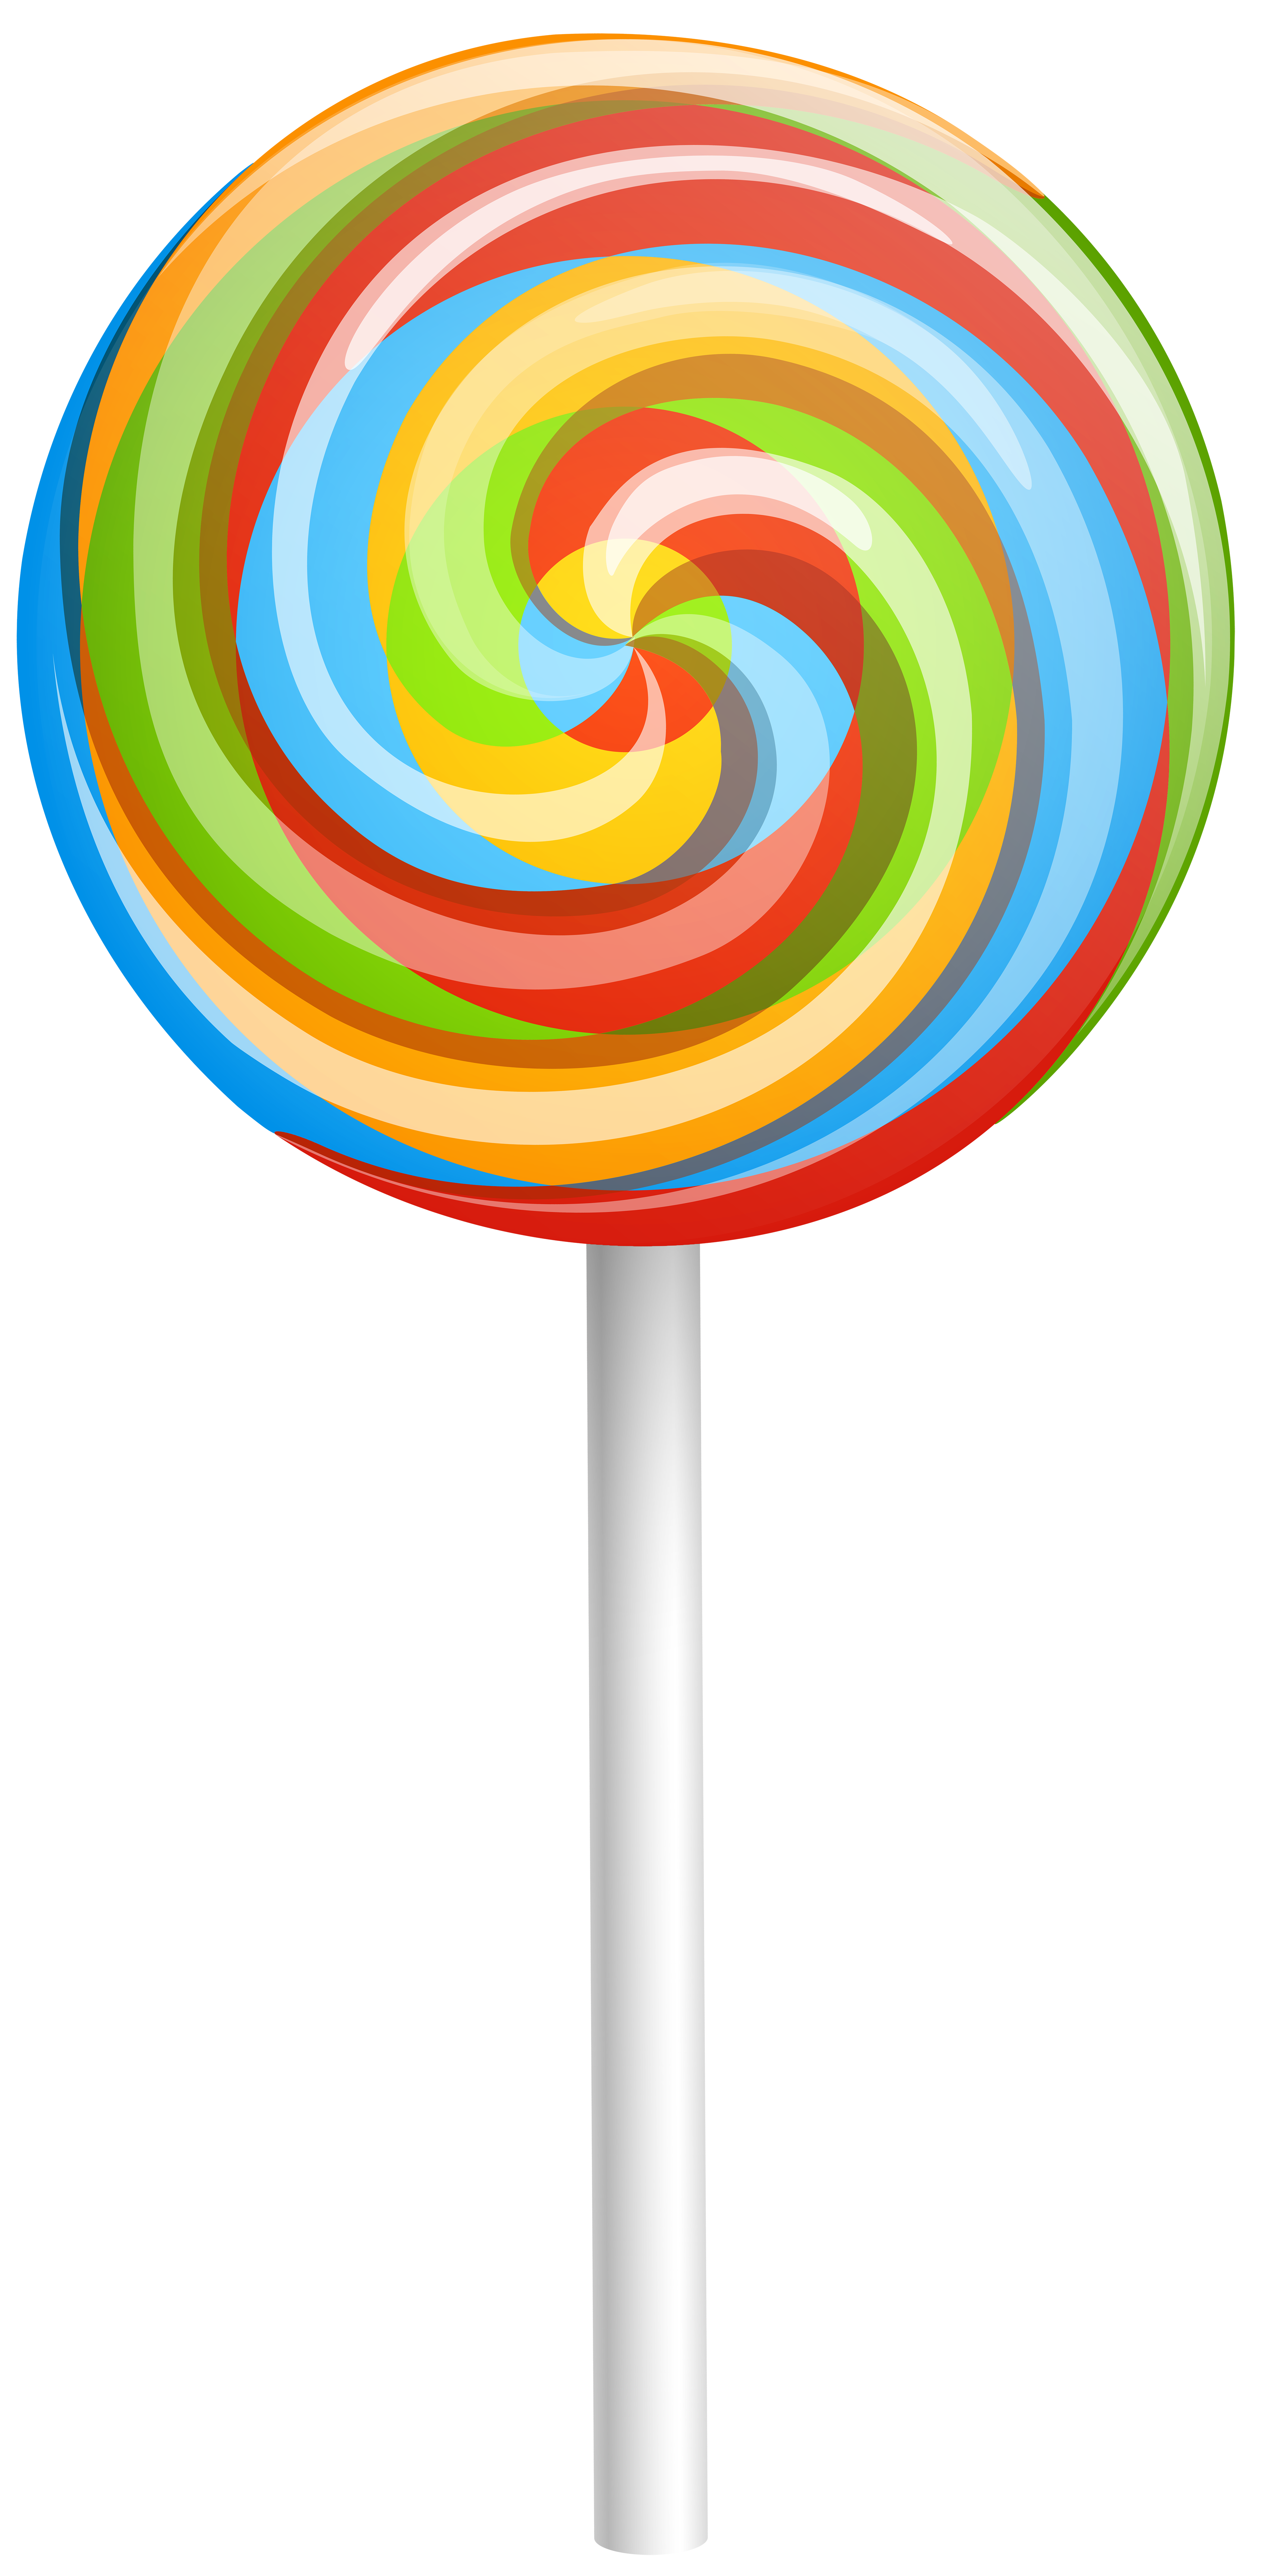 vector free download Lollipop clipart. Pin by reclame quintens.